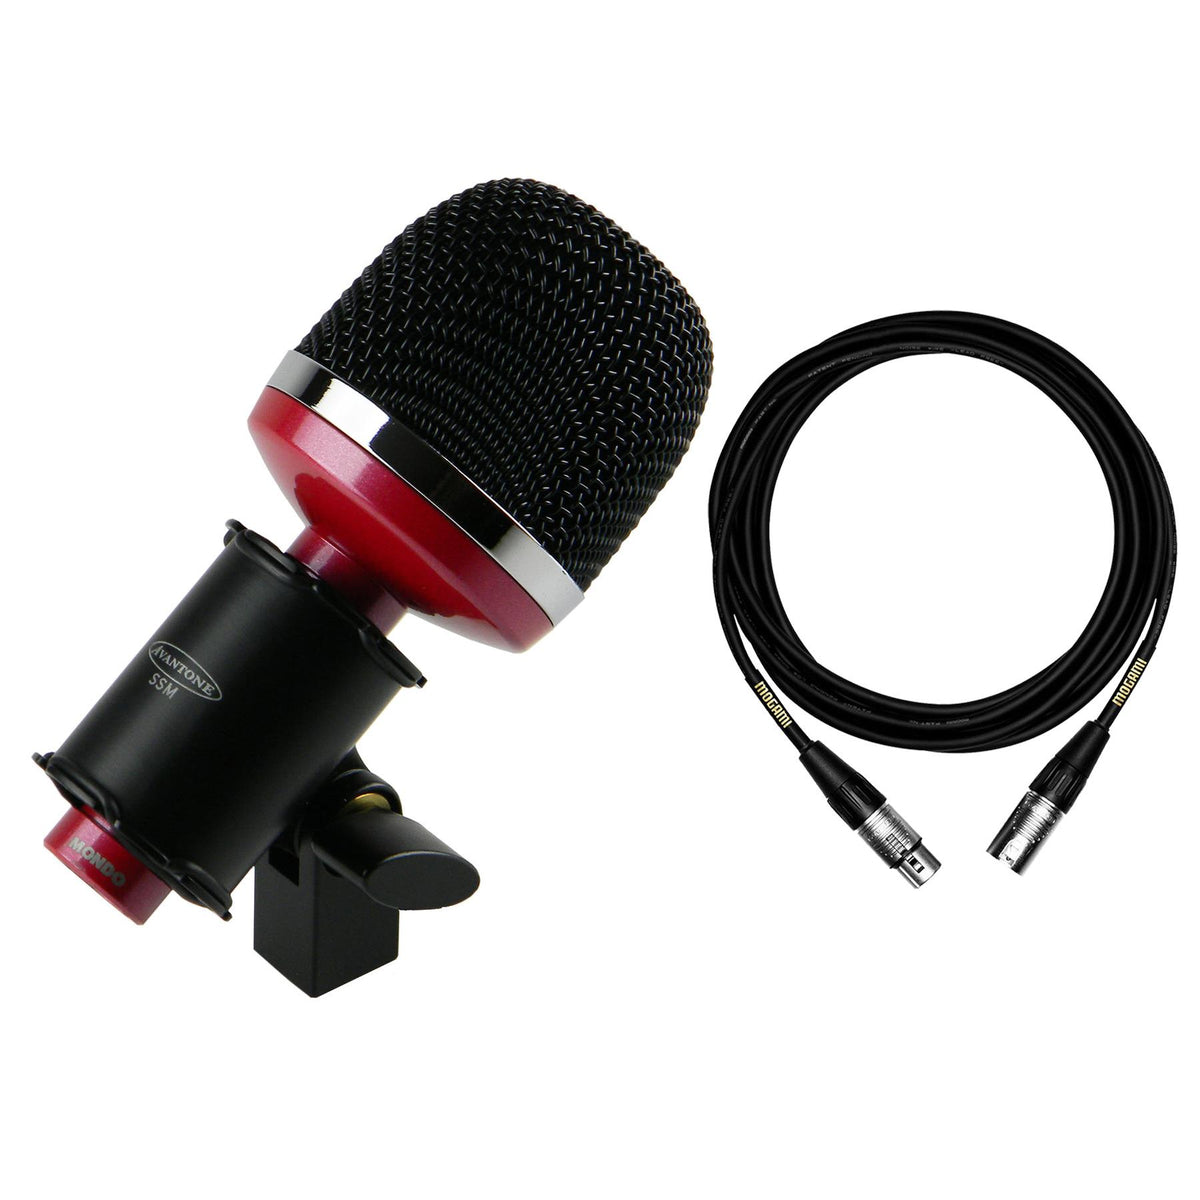 Avantone Pro Mondo Microphone Bundle with Premium 15-foot XLR Mogami Cable